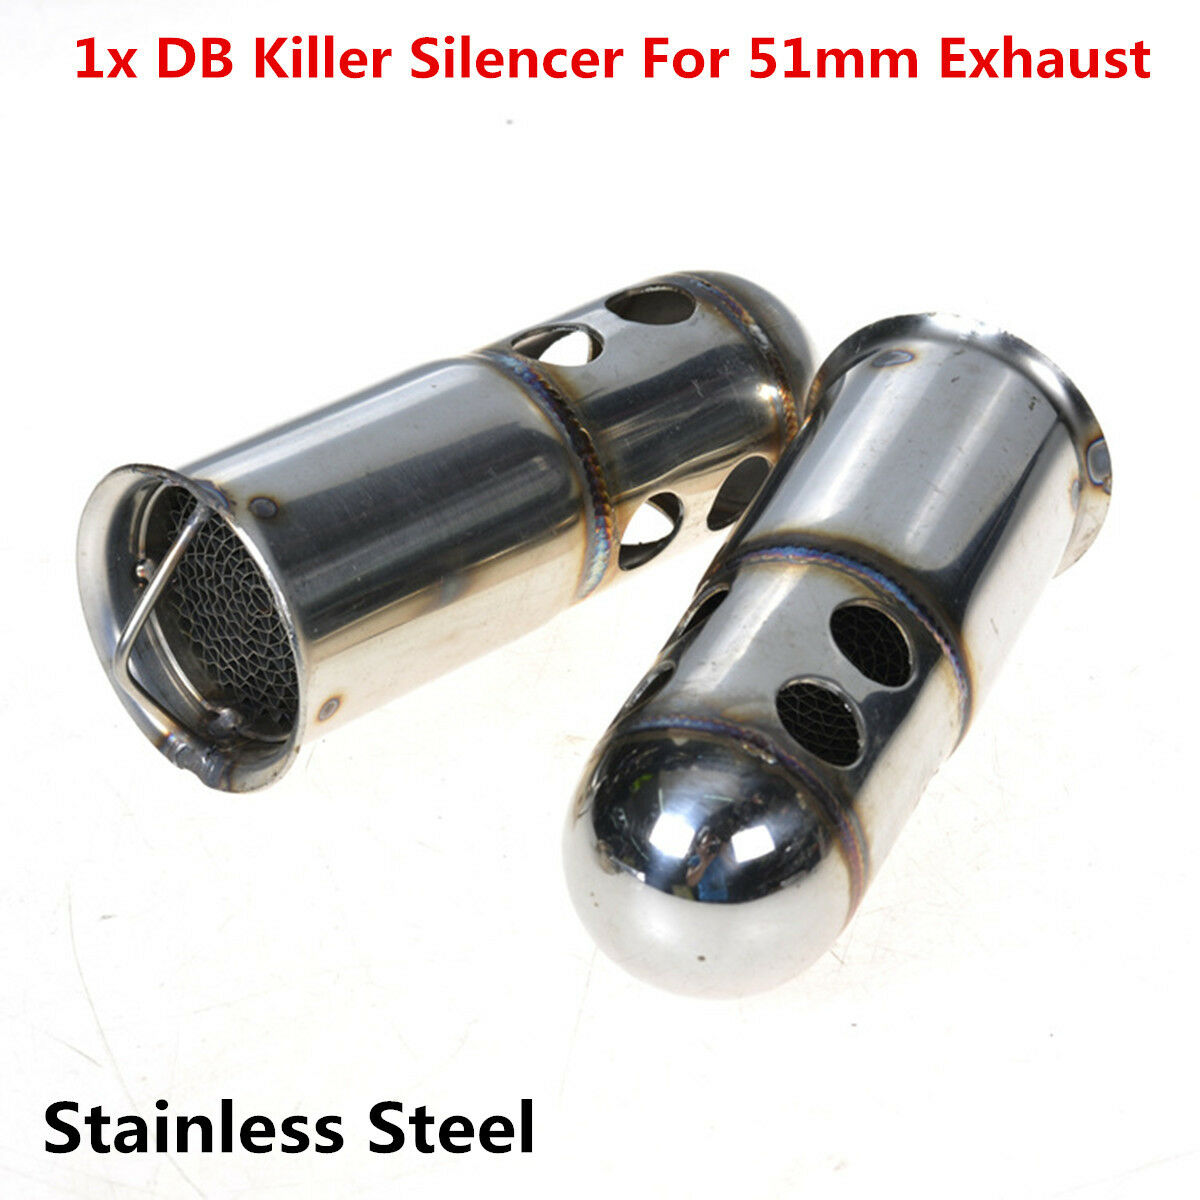 GP Blue Qiilu 1.5-2 Inlet Stainelss Steel Exhaust Muffler Slip on with Moveable DB Killer Dirt Bike Street Bike Scooter ATV Racing